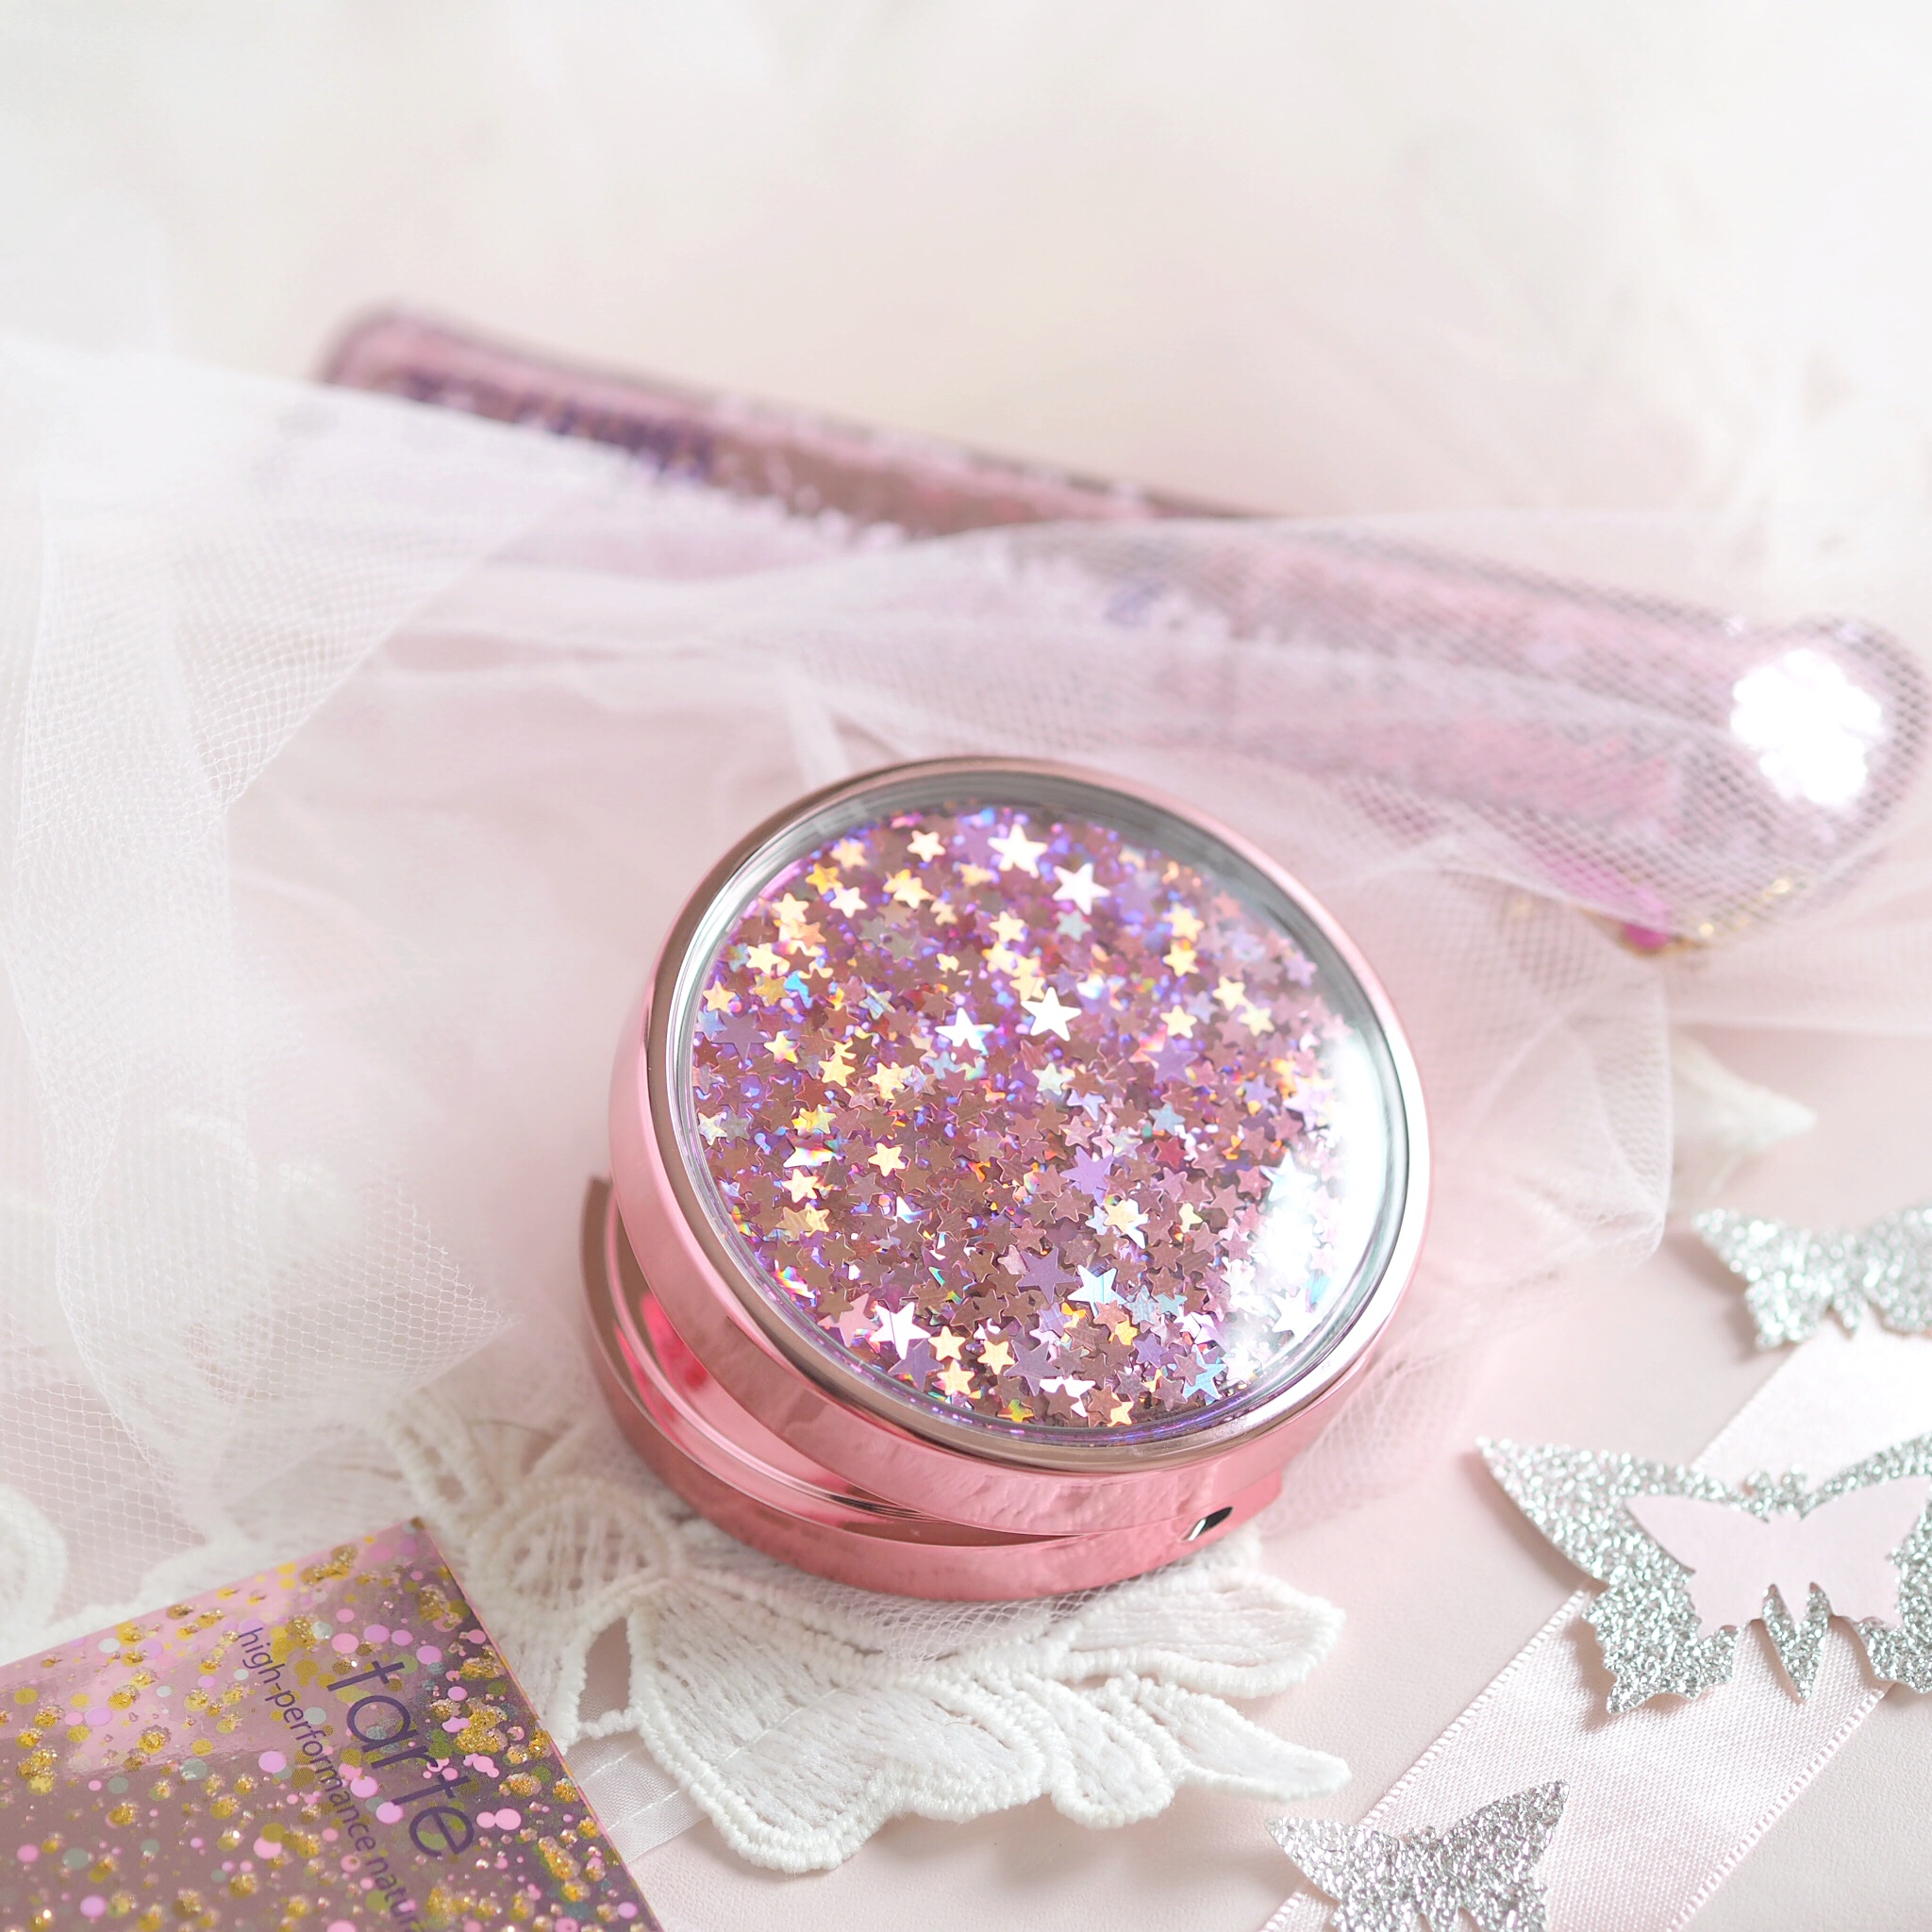 Fairy Flush Blush | Tarte Love, Trust & Fairy Dust Vault